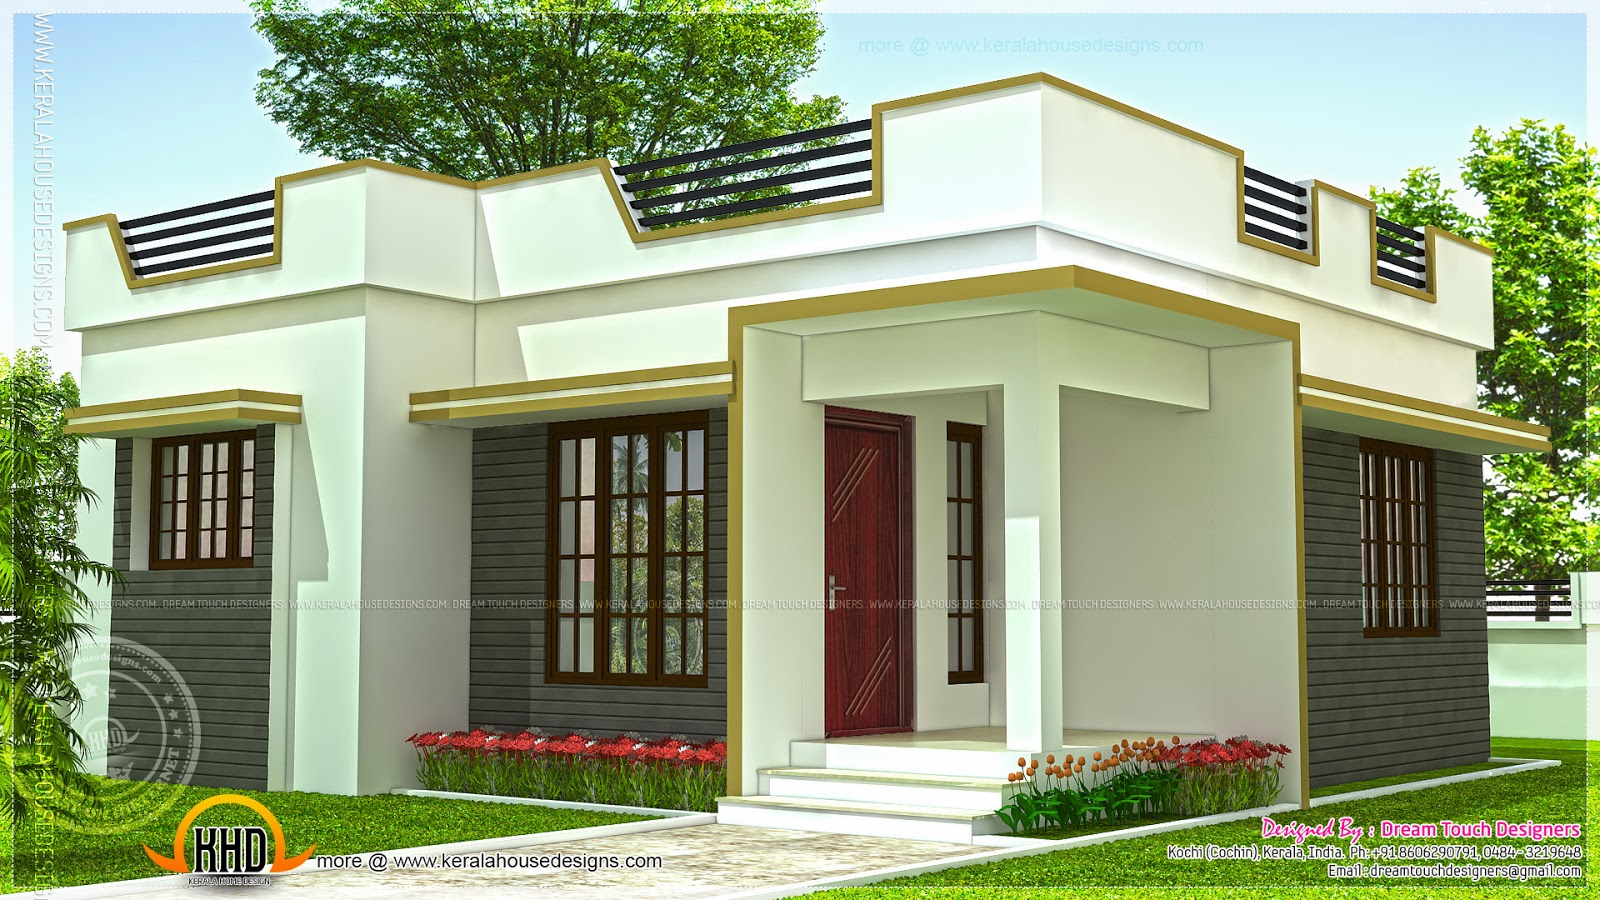 Open Floor Plans Ranch Style Homes Kerala Beautiful Houses Inside Small House Plans Kerala